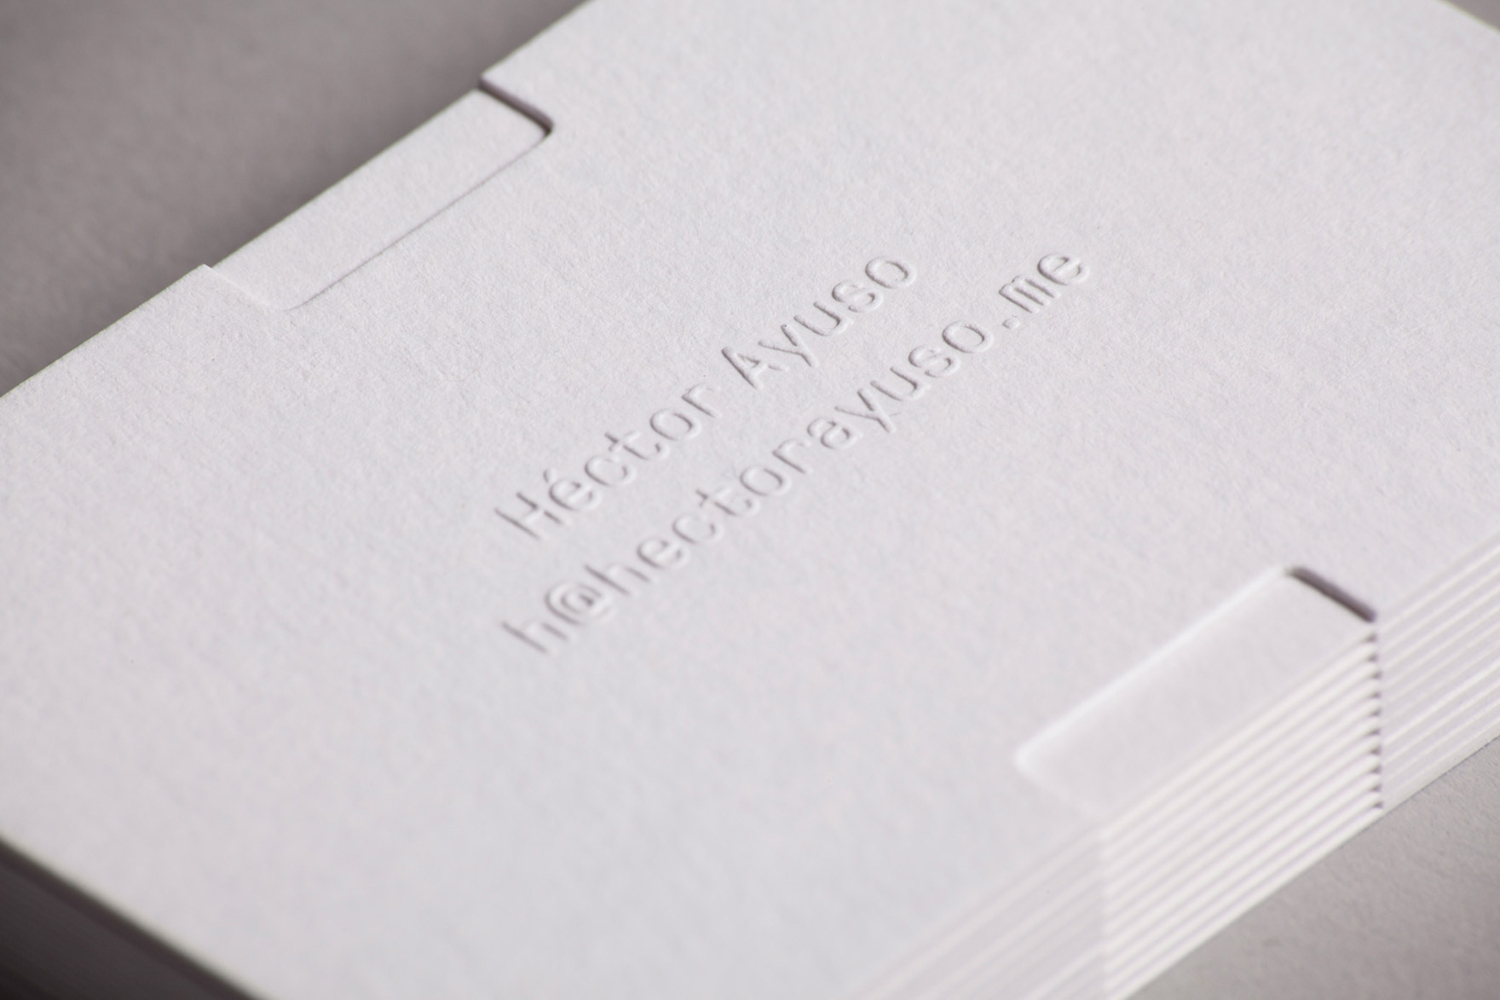 Blind emboss business card for Héctor Ayuso designed by Mucho